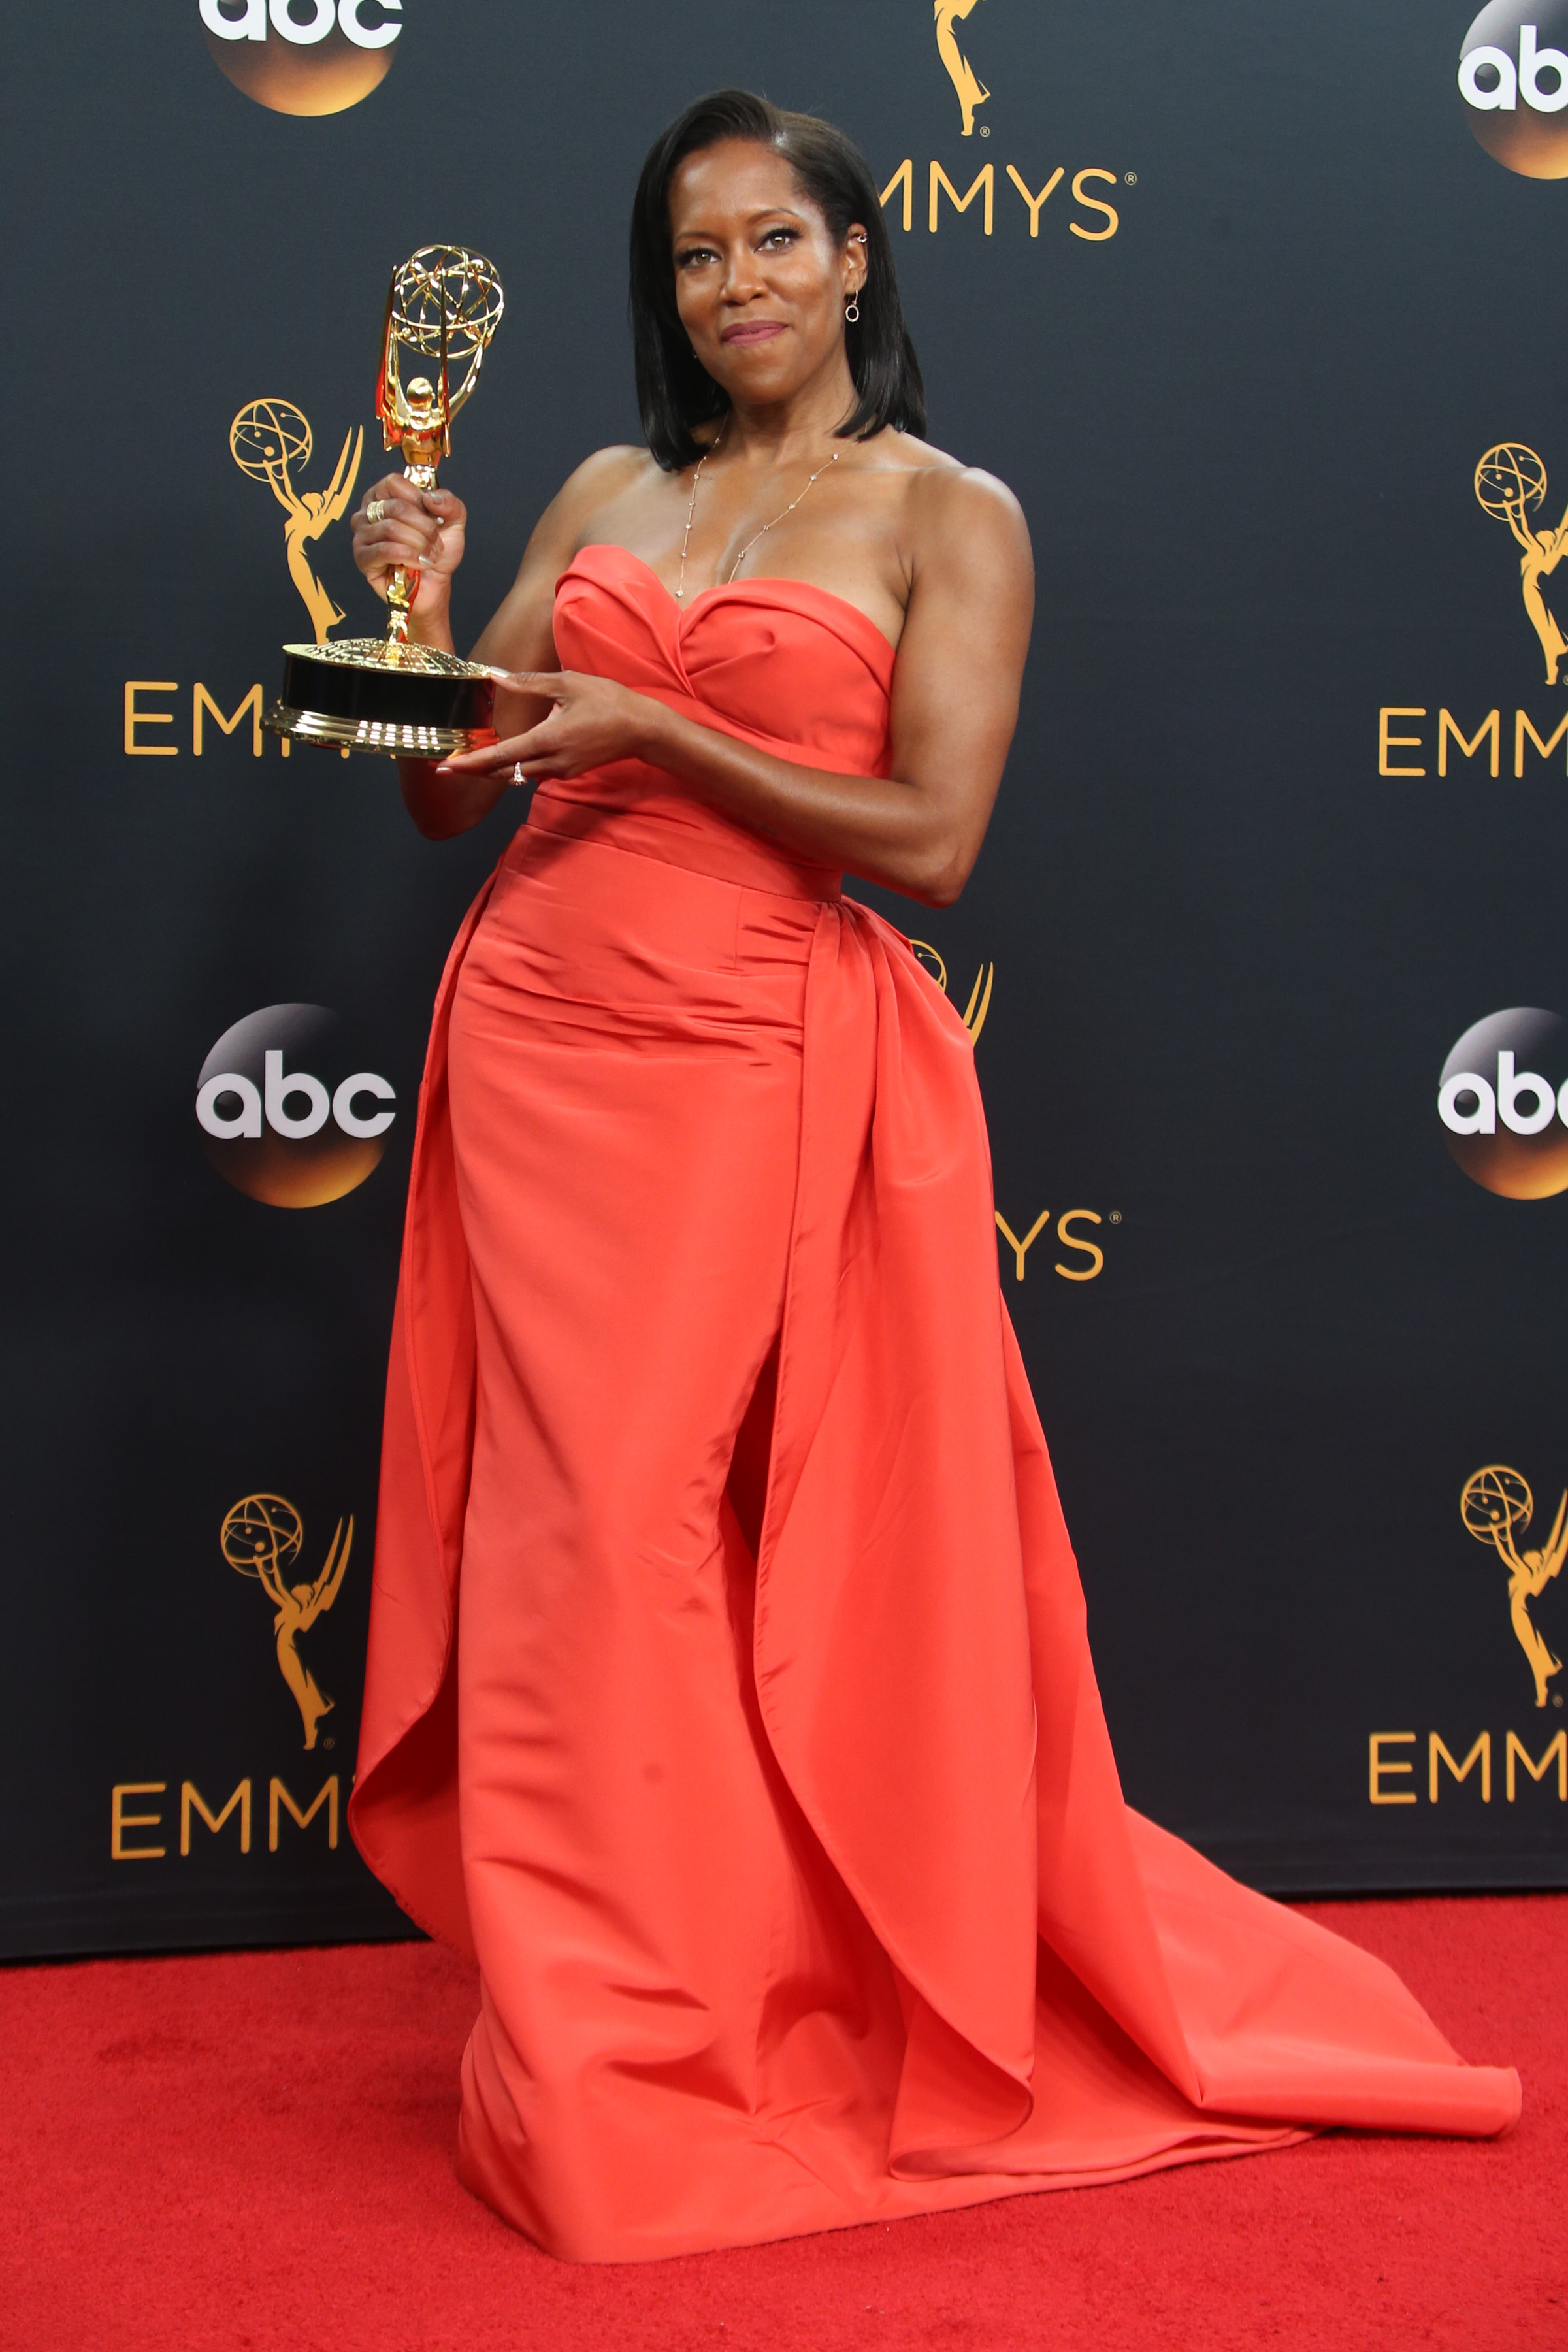 68th Annual Primetime Emmy Awards - Press Room at the Microsoft Theatre Featuring: Regina King Where: Los Angeles, California, United States When: 19 Sep 2016 Credit: FayesVision/WENN.com